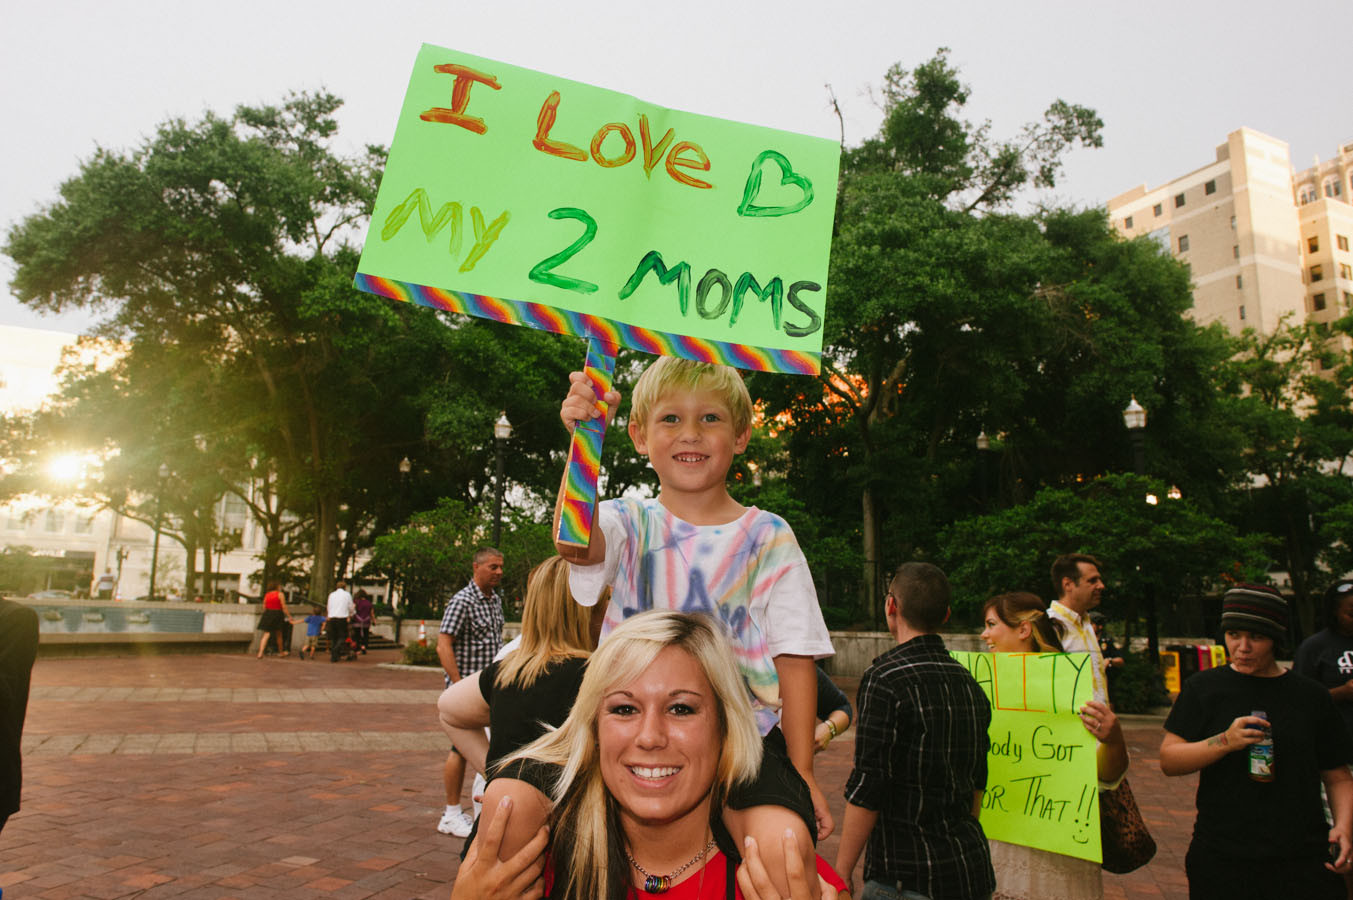 Kenny Cochran holds a sign extolling his love for his two mothers while sitting on his Aunt Jessi Minsch's shoulders.